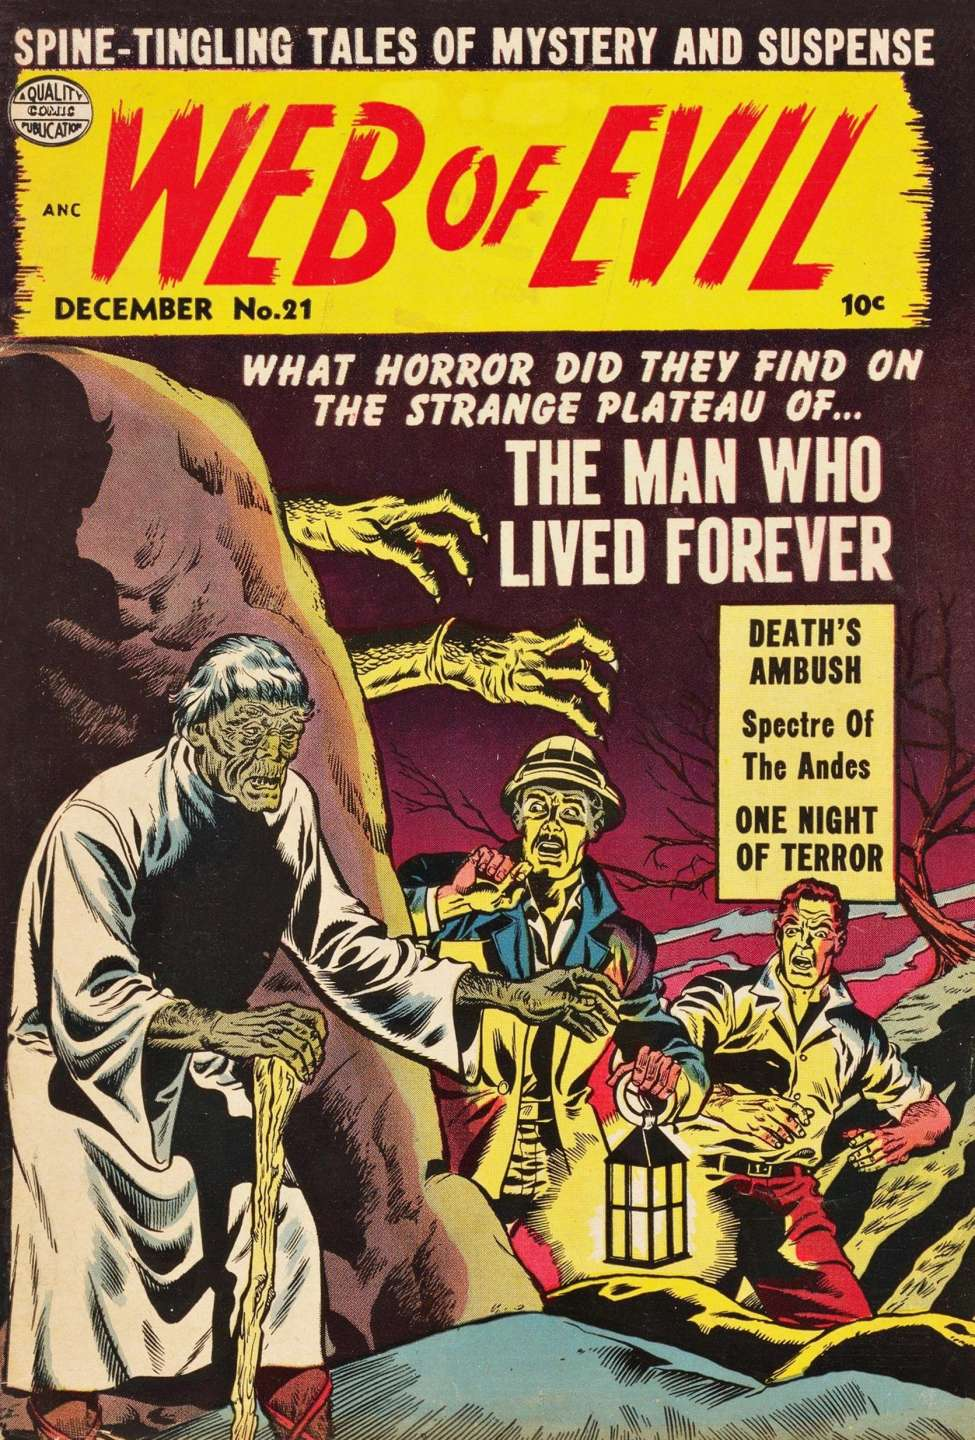 Comic Book Cover For Web of Evil #21